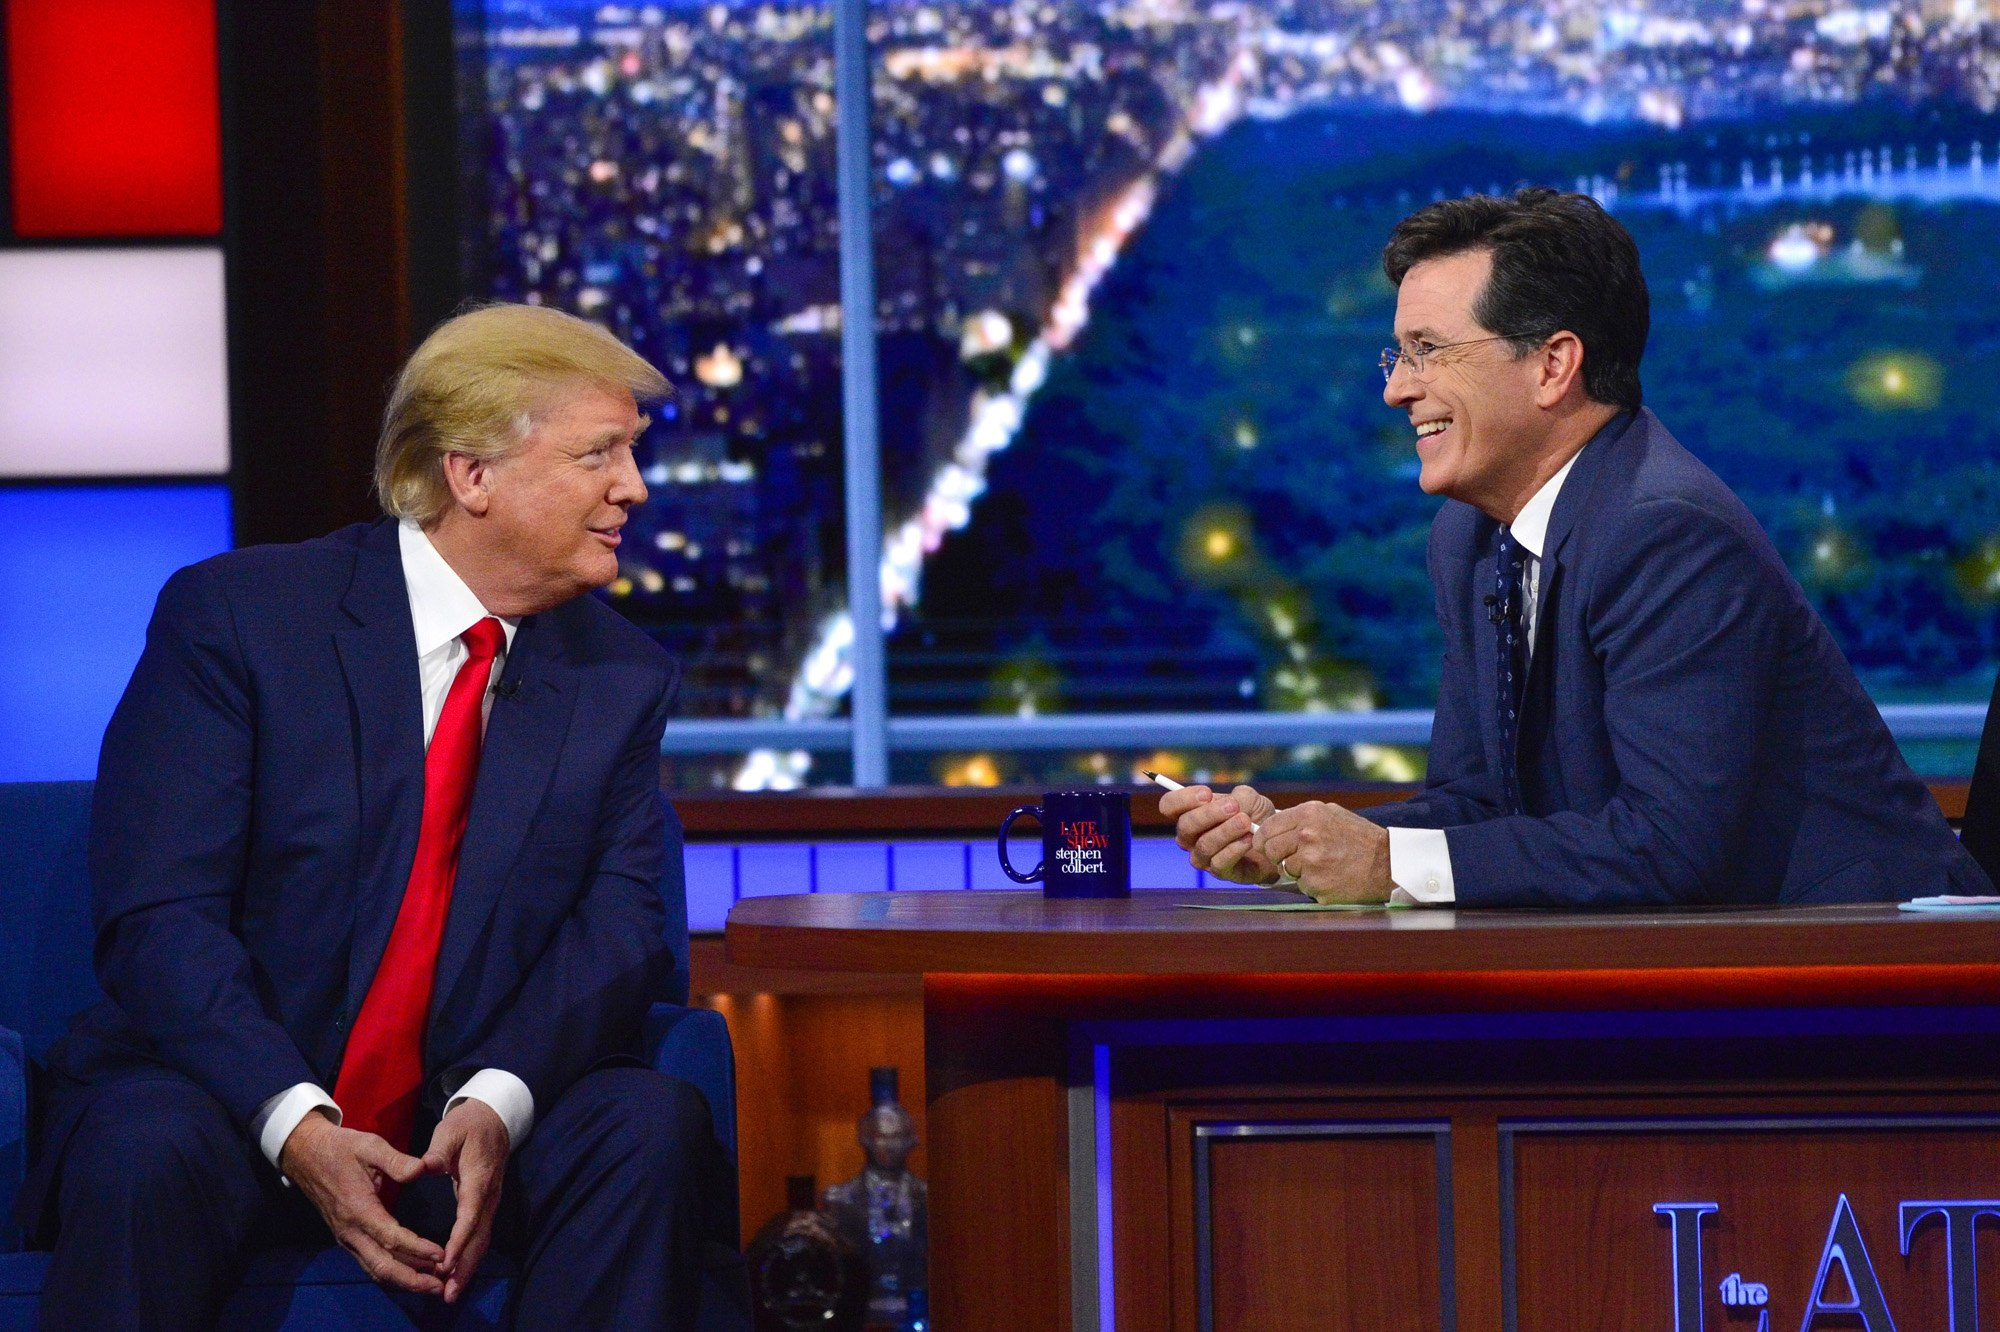 Stephen Colbert's Net Worth: How Much Does He Get Paid to